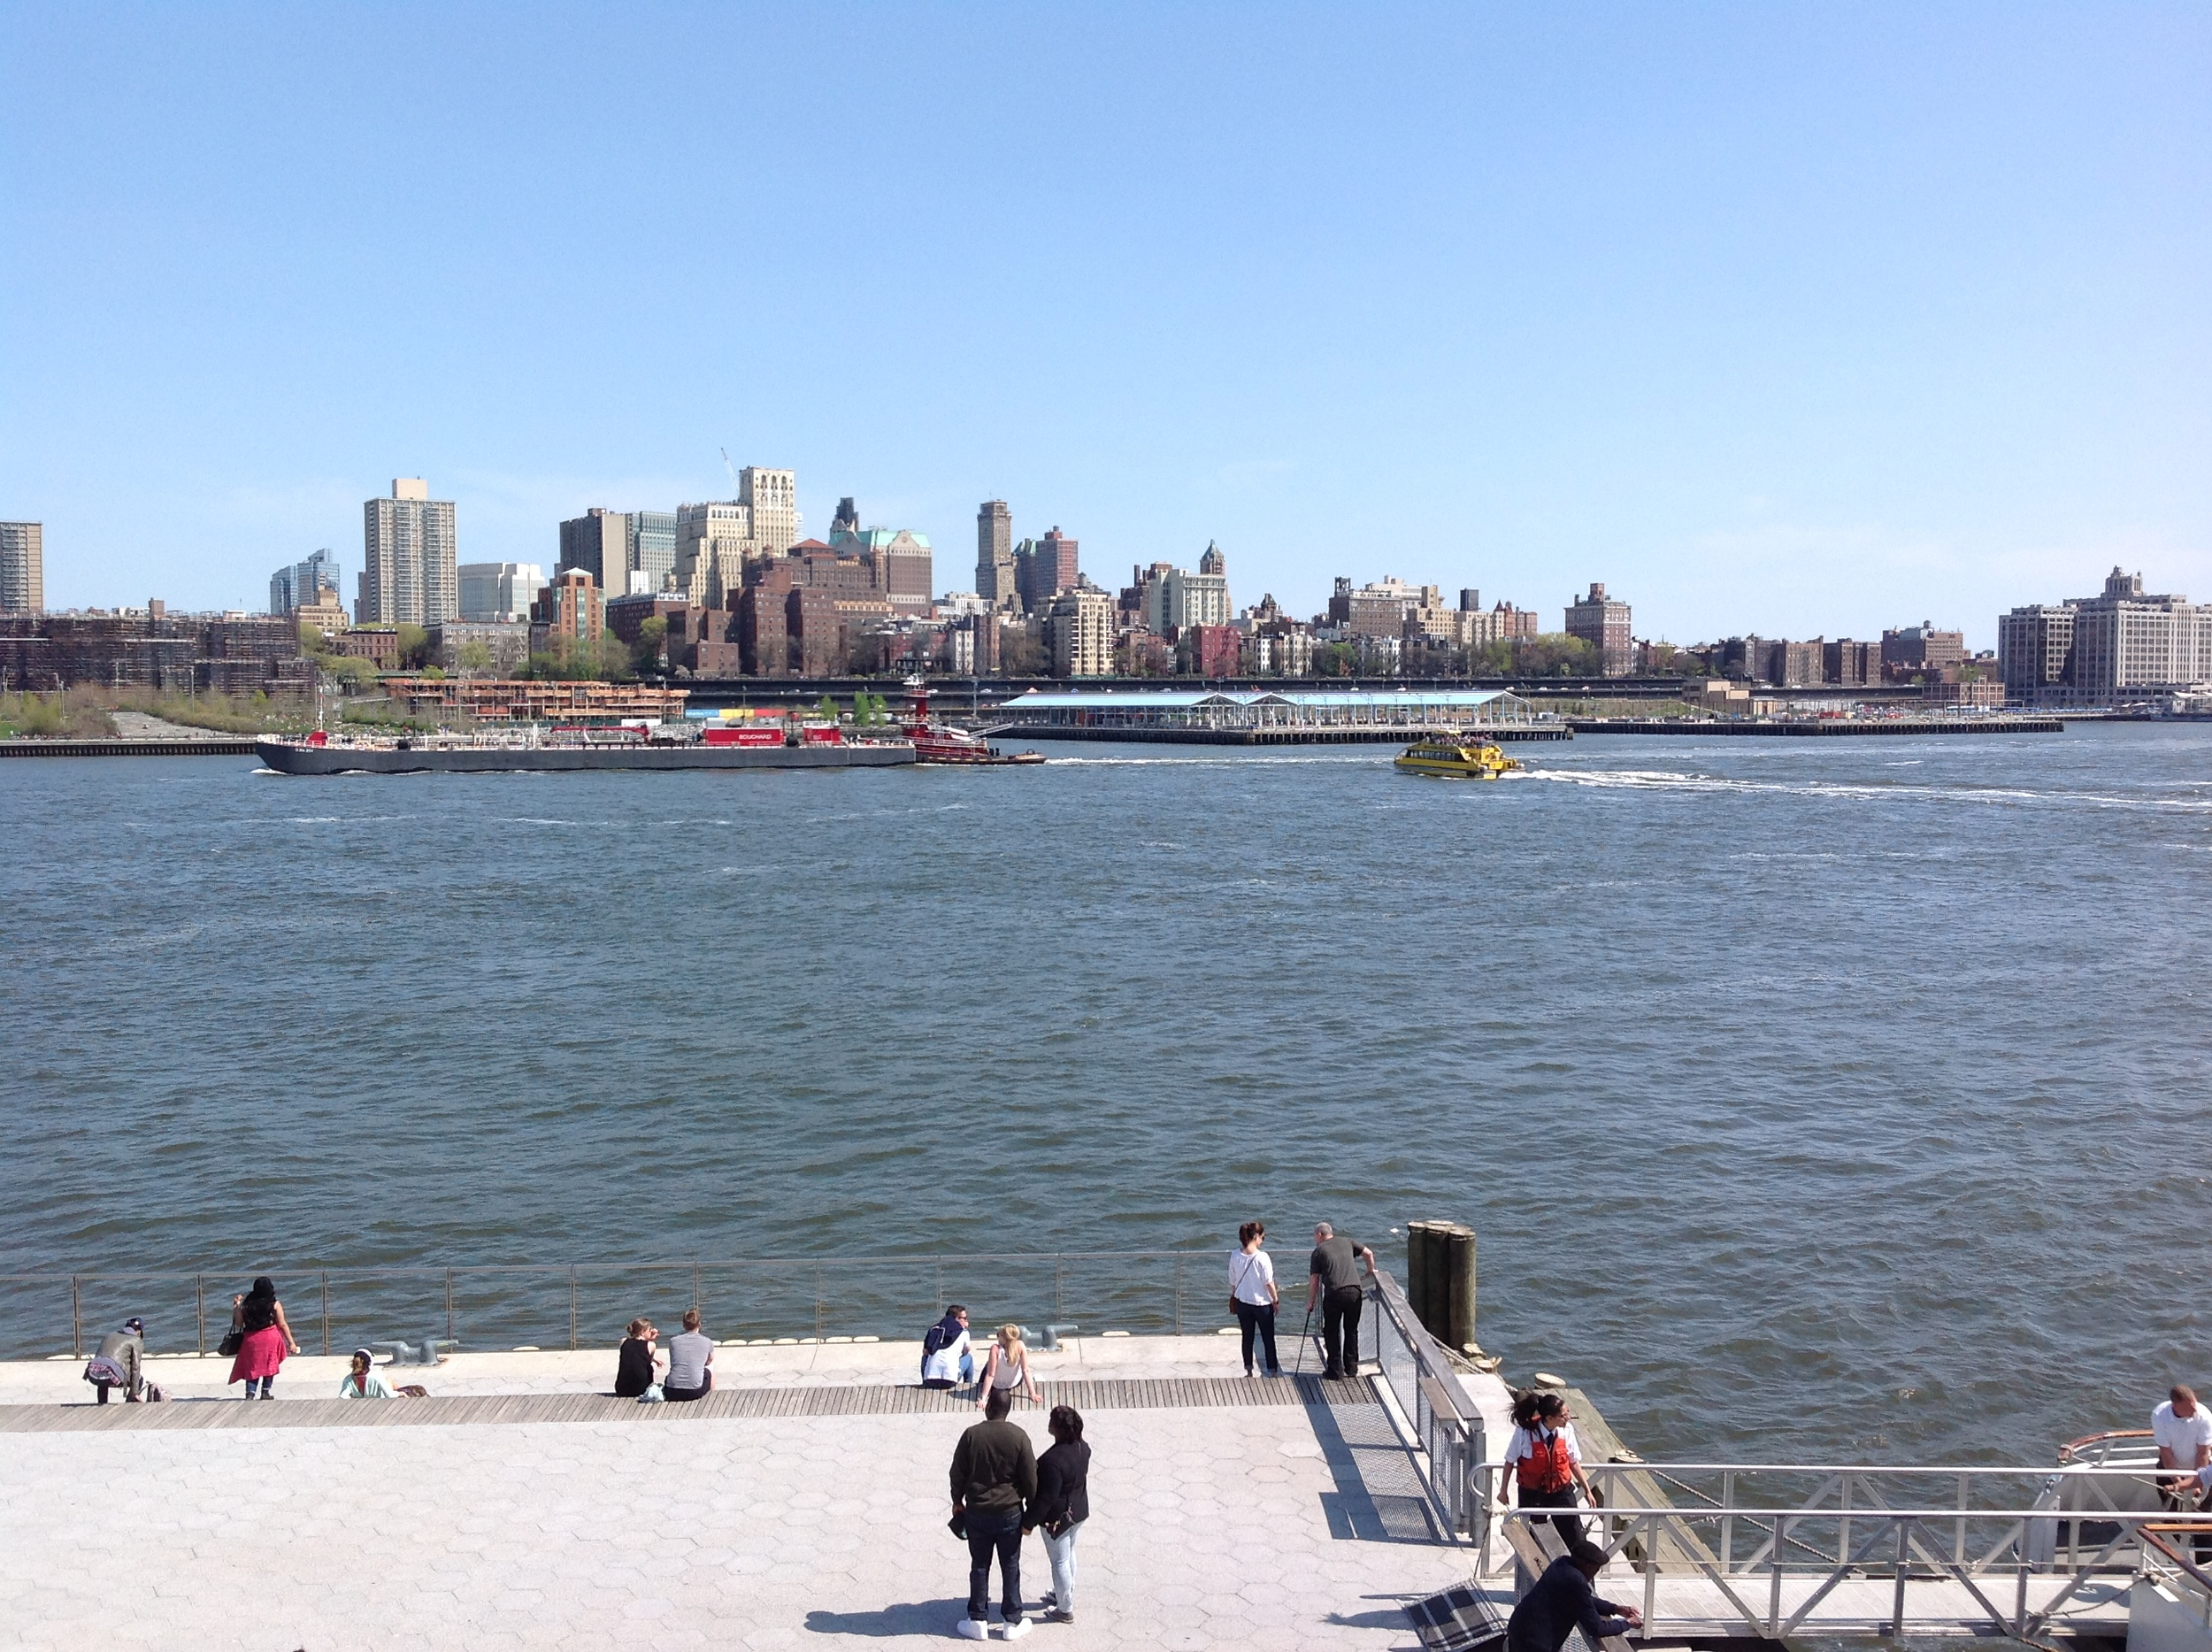 view of downtown brooklyn from south street seaport, may 2015